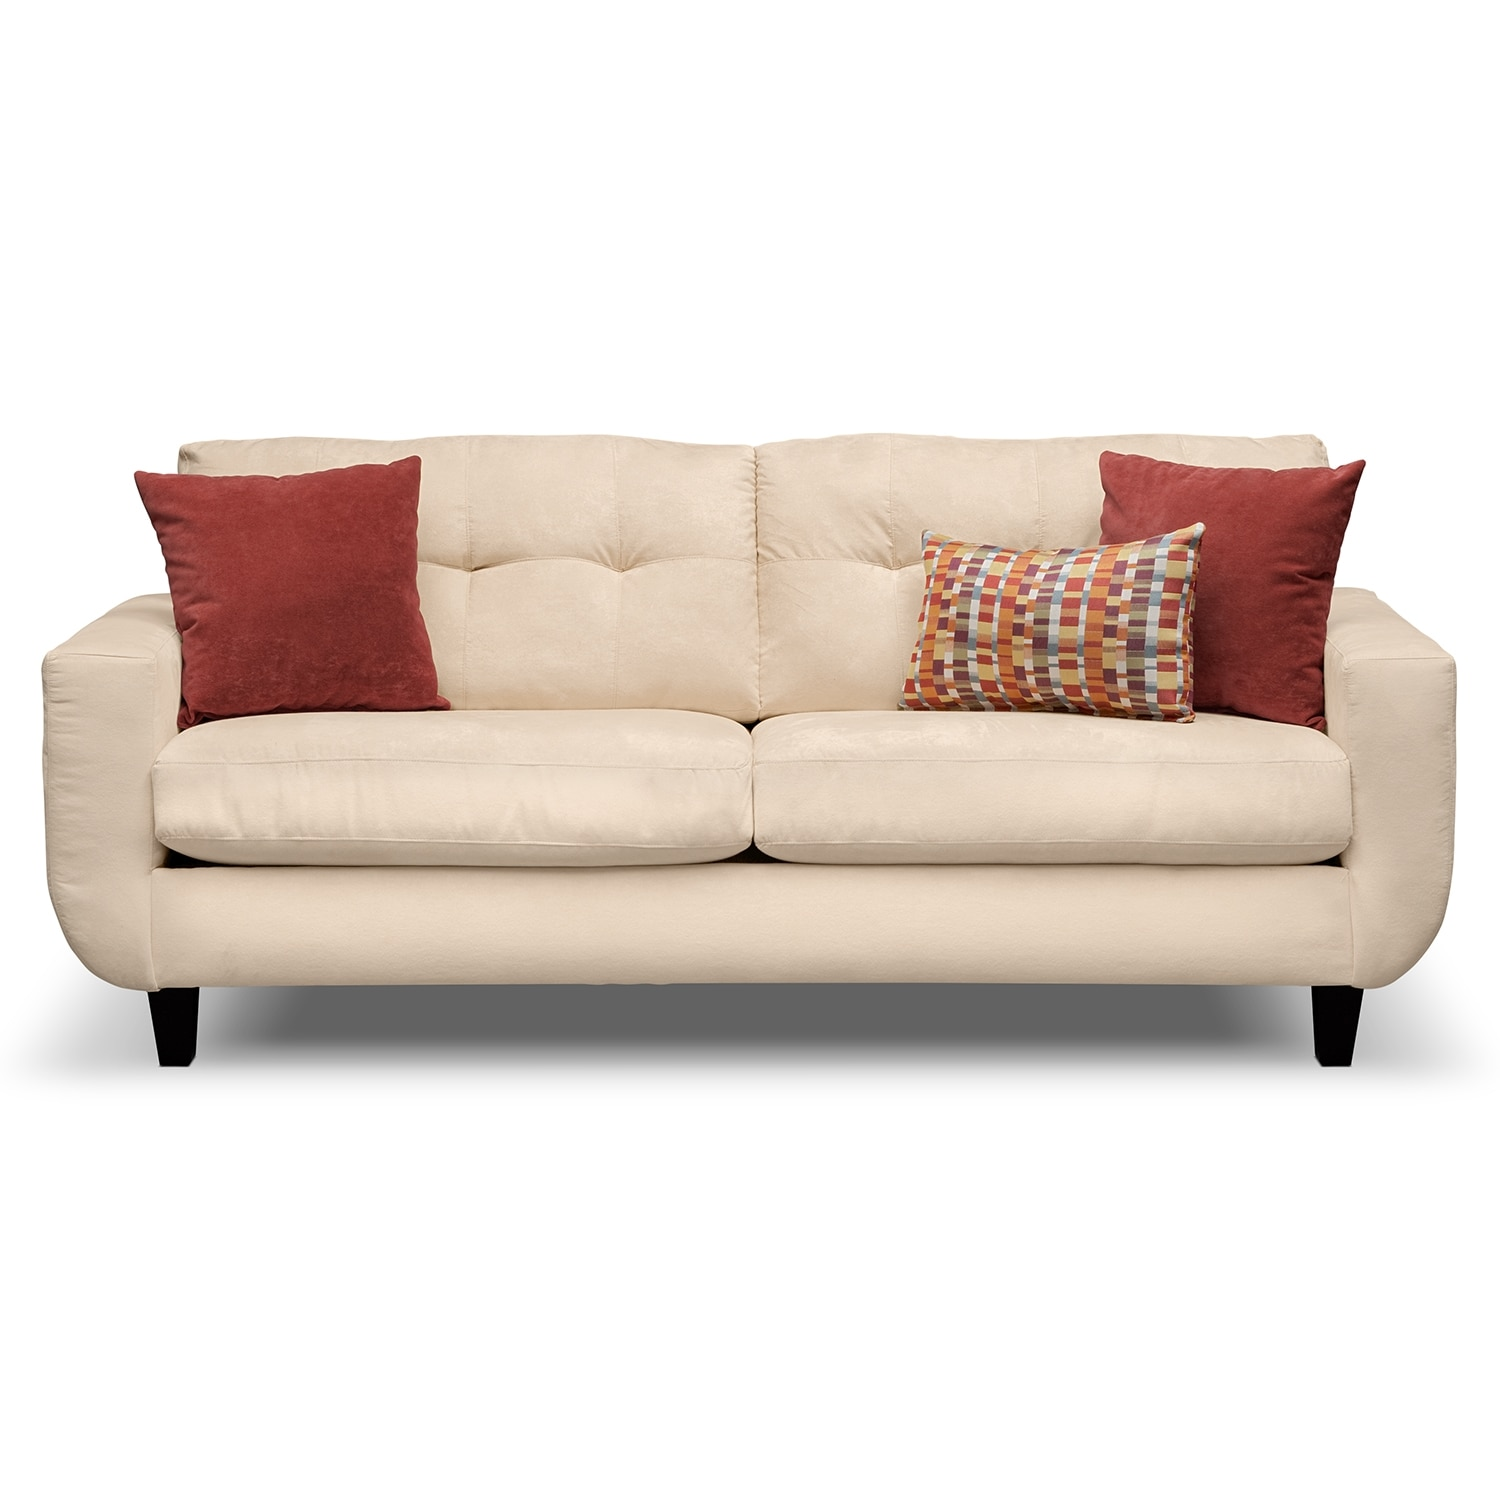 West Village Cream Upholstery Sofa Value City Furniture